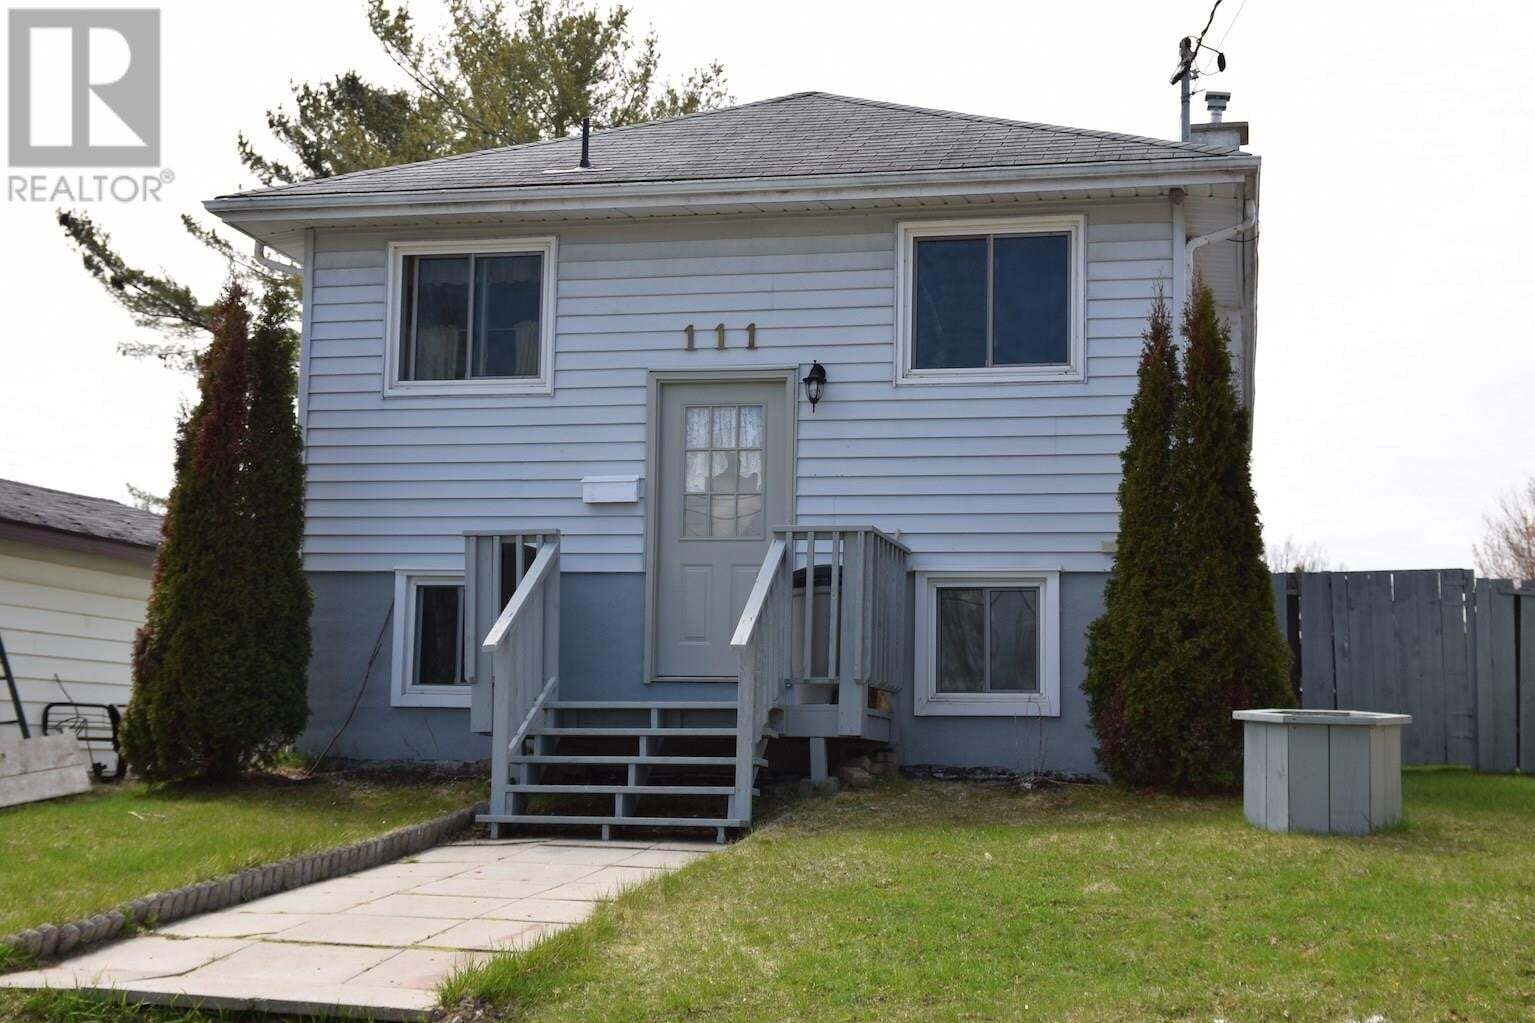 House for sale at 111 Youngfox Rd Blind River Ontario - MLS: SM127320